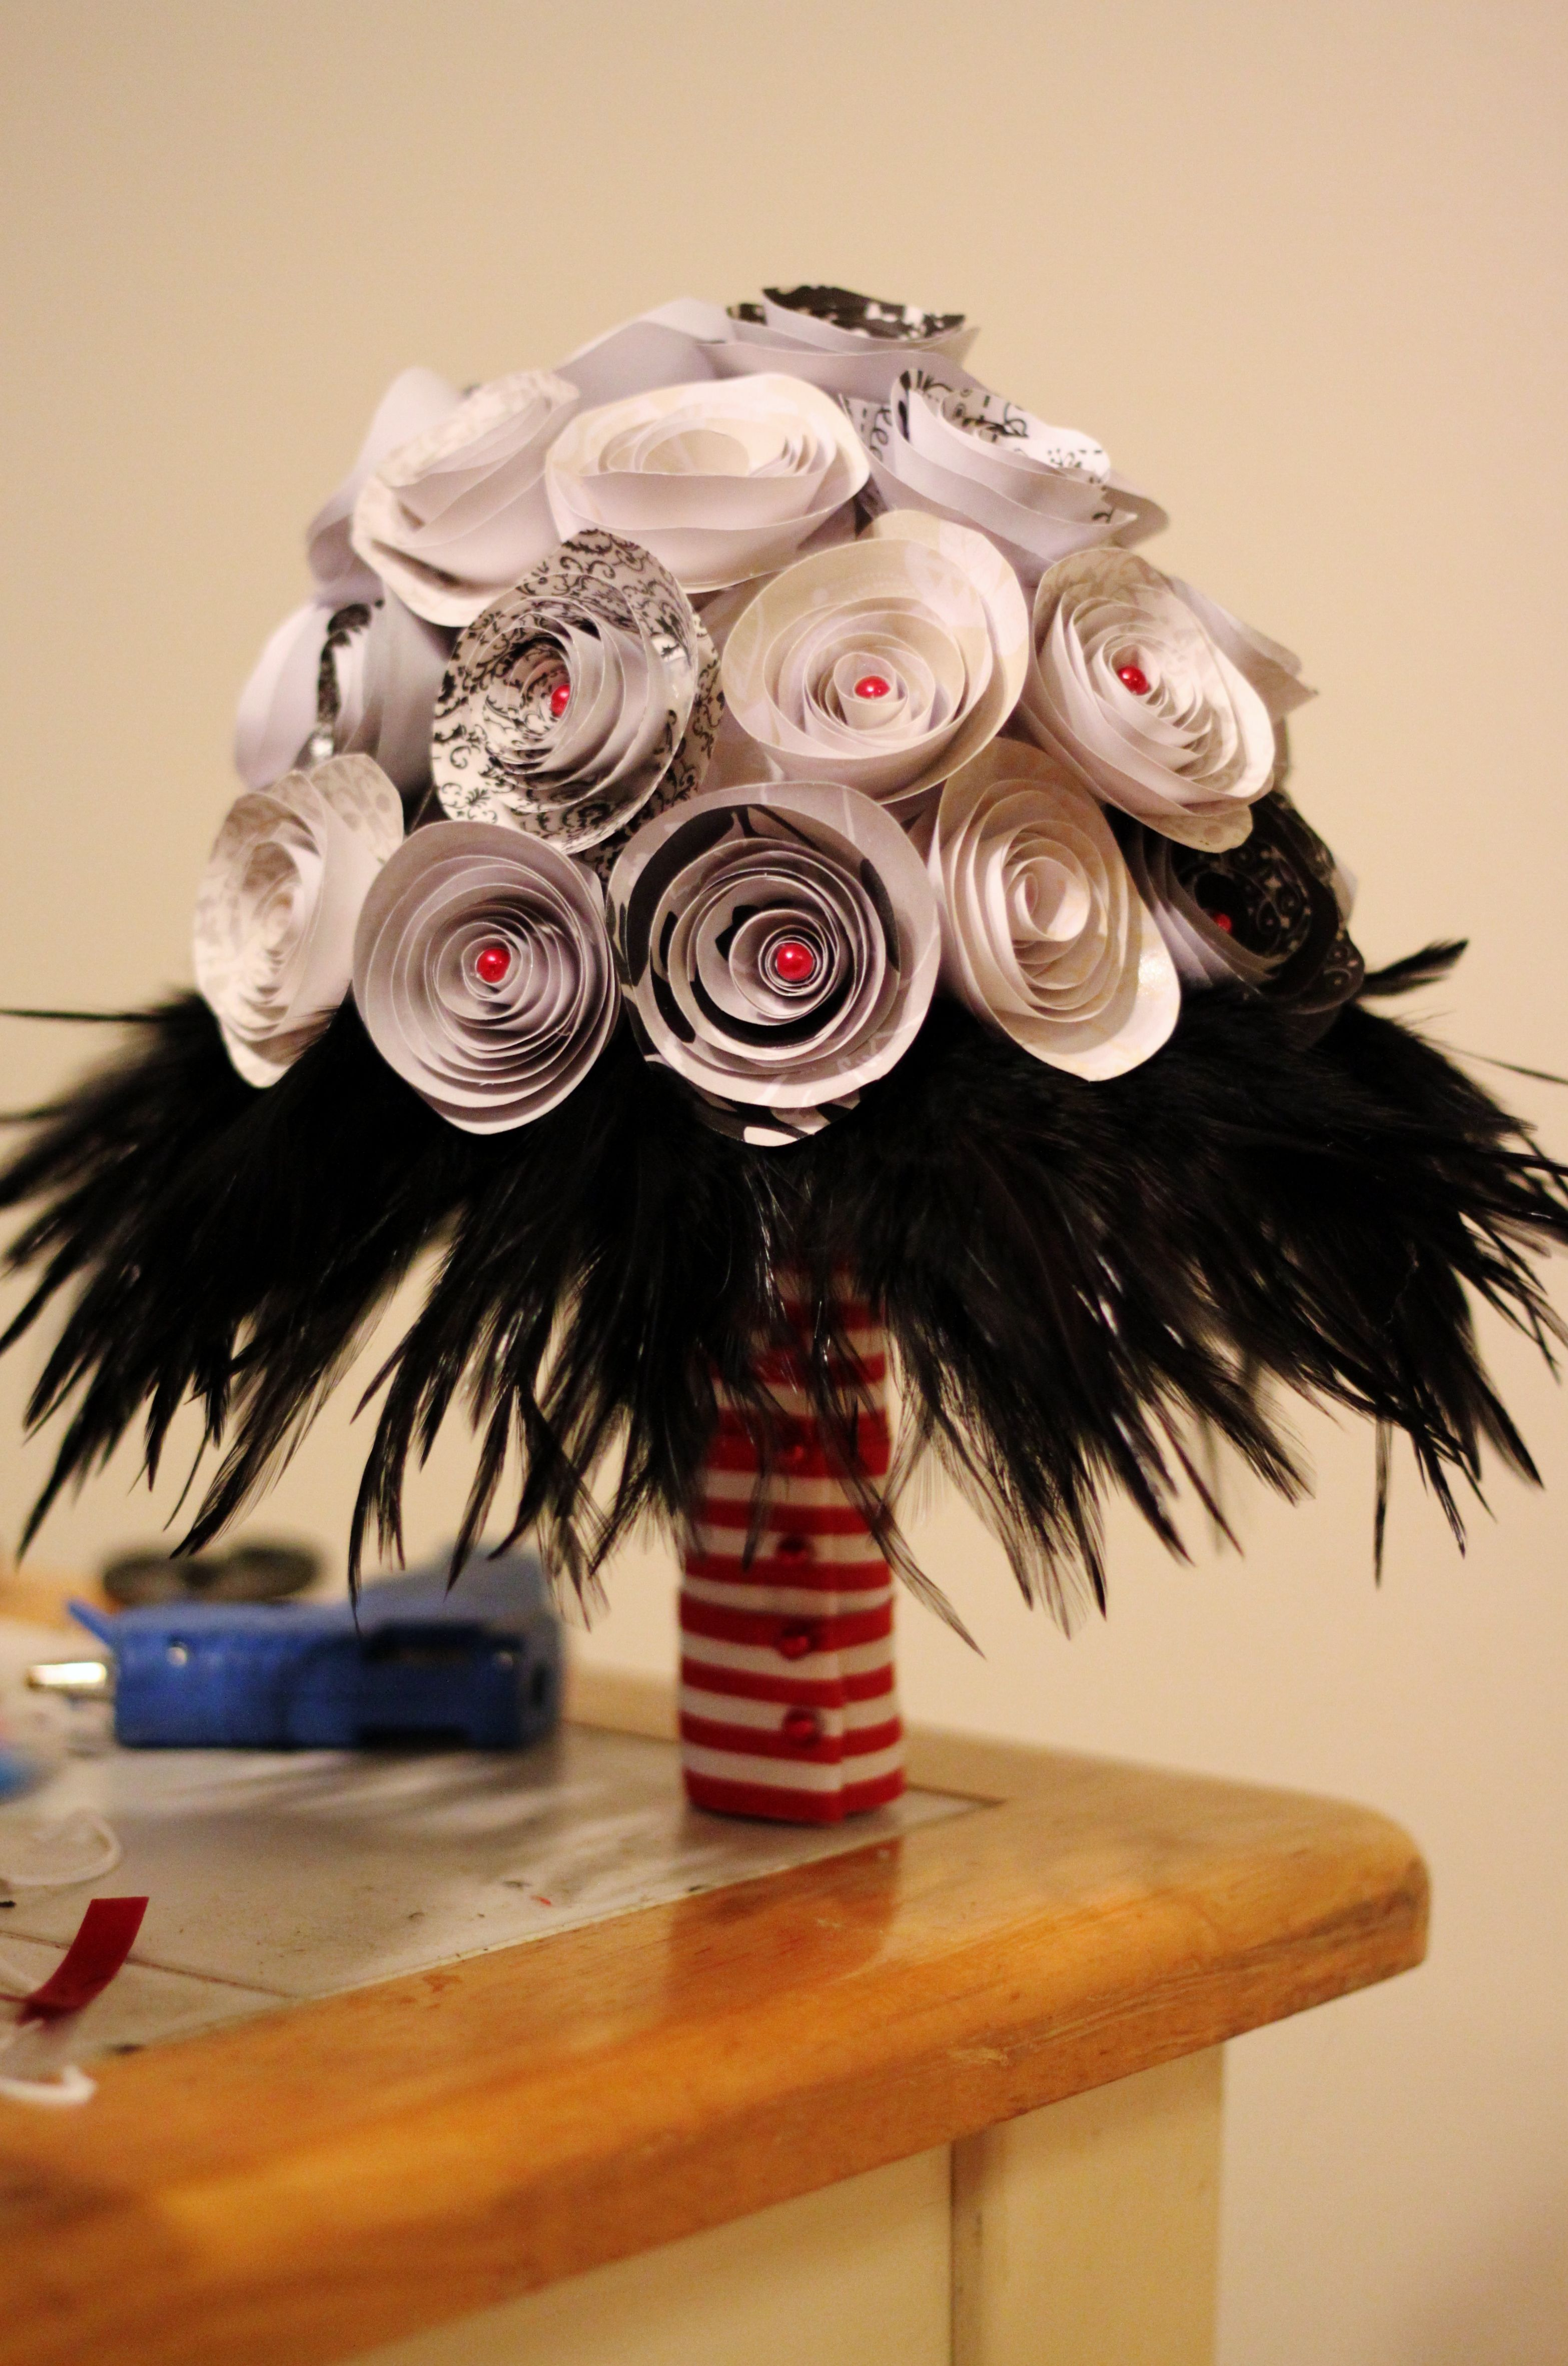 This is my finished bouquet! Rolled black and white paper flowers with red pearl beads in the centers arranged on a styrofoam bouquet holder. The black feathers are trim glued to a large bouquet collar I ripped the white lace trim off of. I thicken the handle by wrapping some sheet foam around it and covering it with pretty red/white striped ribbon. I love how it came out!! =]